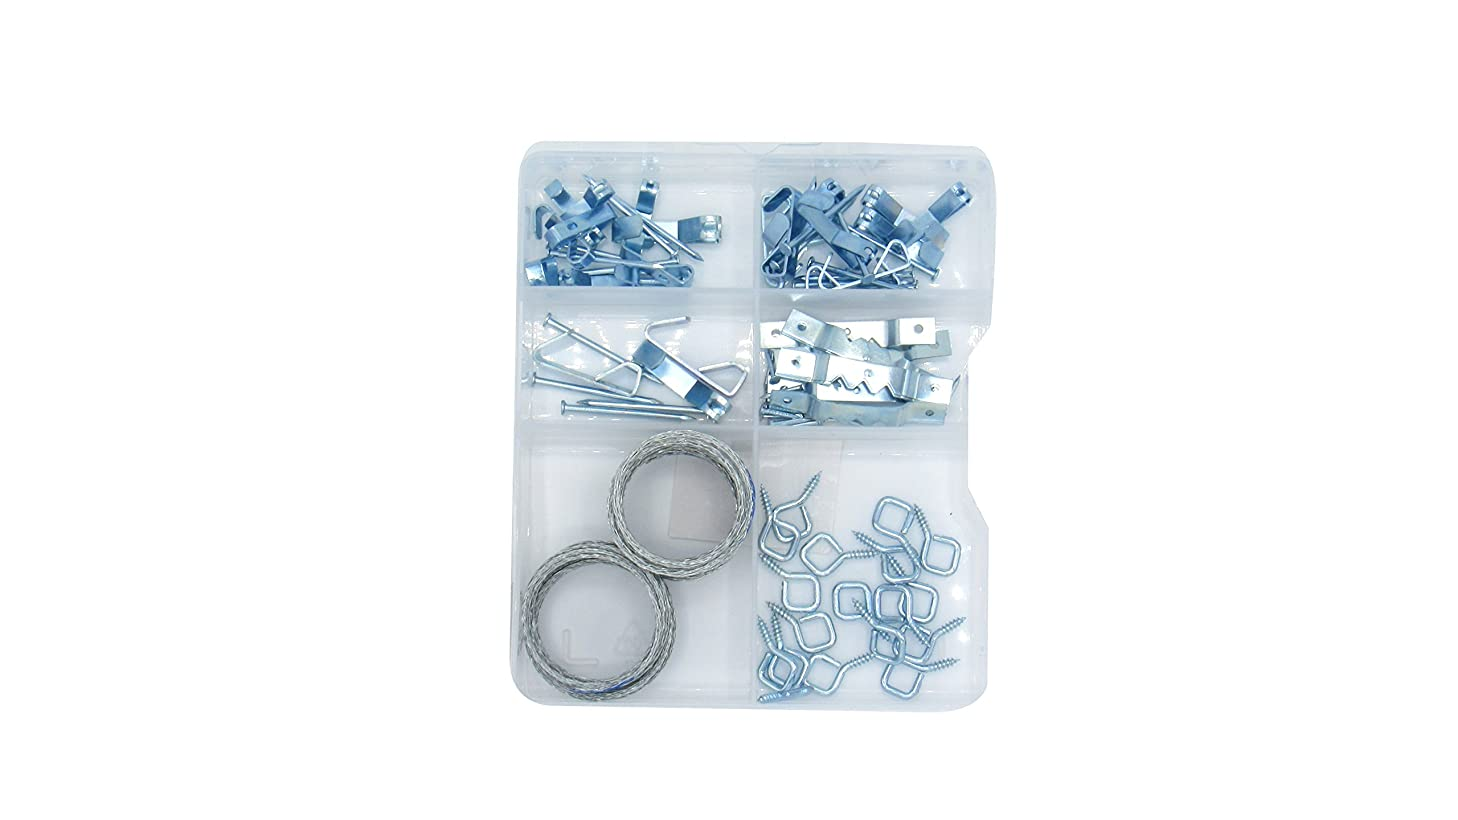 Assorted Hanging Kit for Photos, Pictures, Clocks, Mirrors, Paintings, Artwork, and Canvases. Includes Picture Frame Hook, Hooks, Nails, Saw-Tooth Hangers, and Hanging Wire